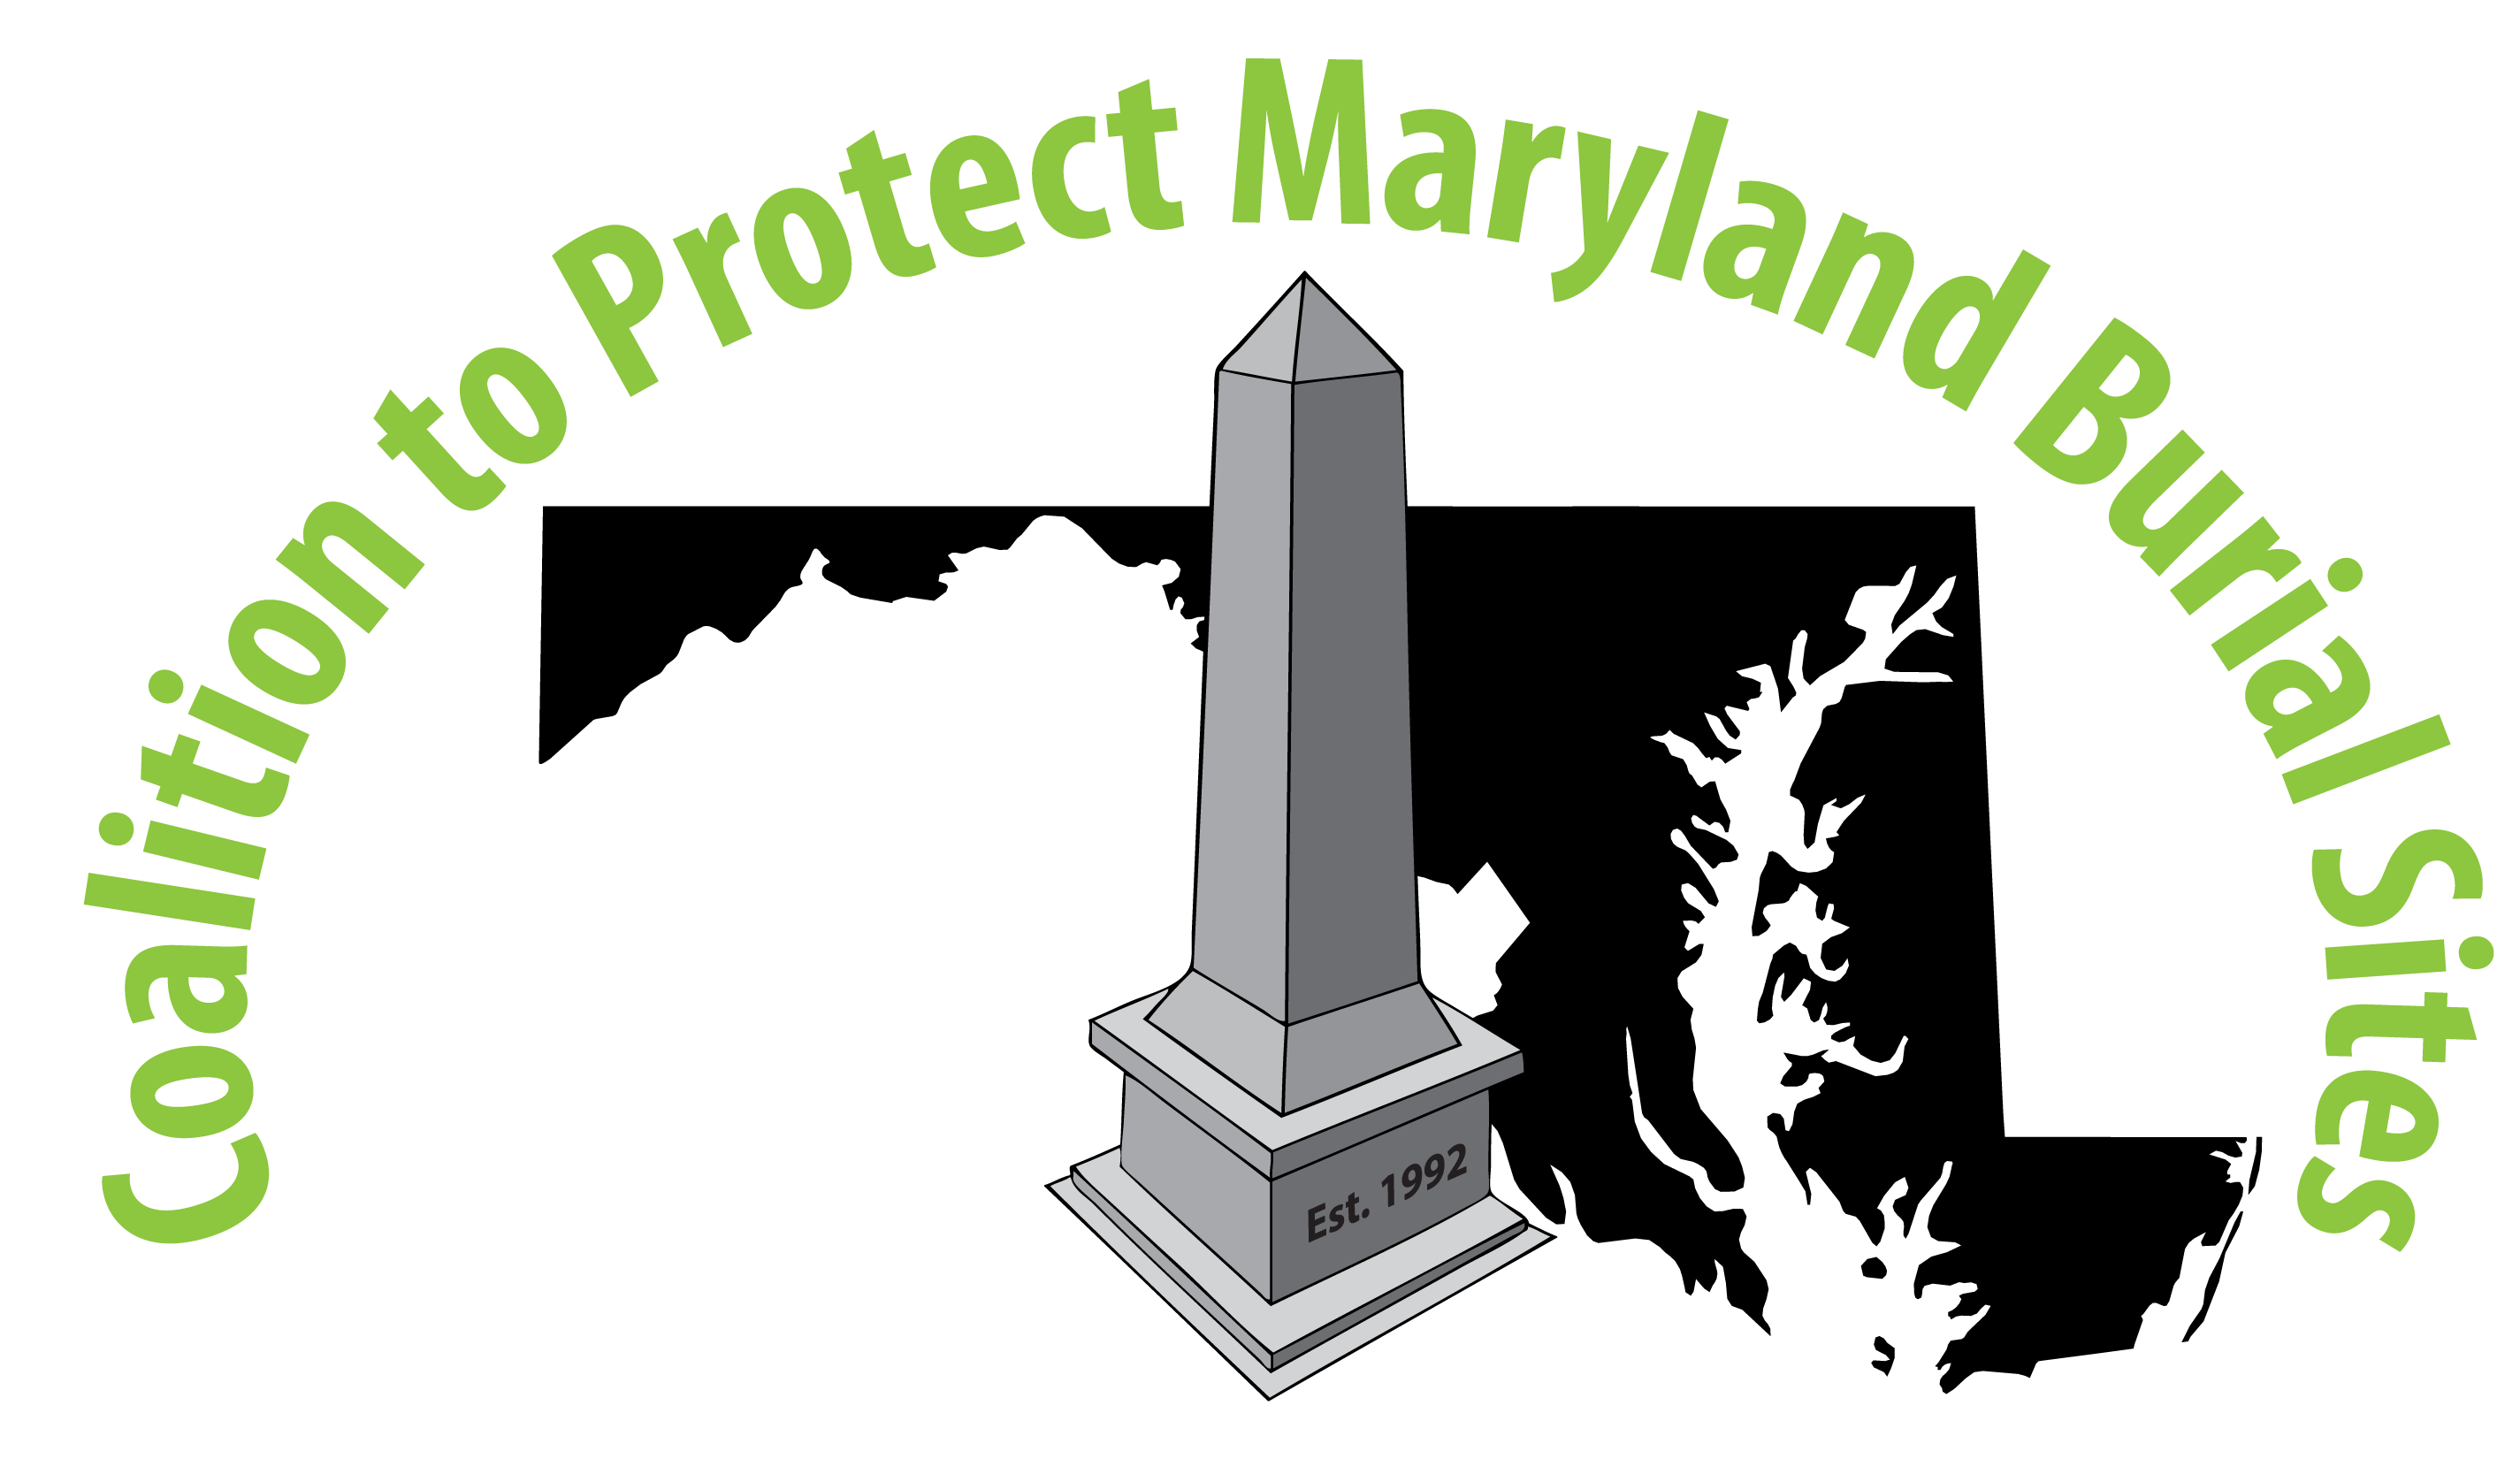 Coalition to Protect Maryland Burial Sites